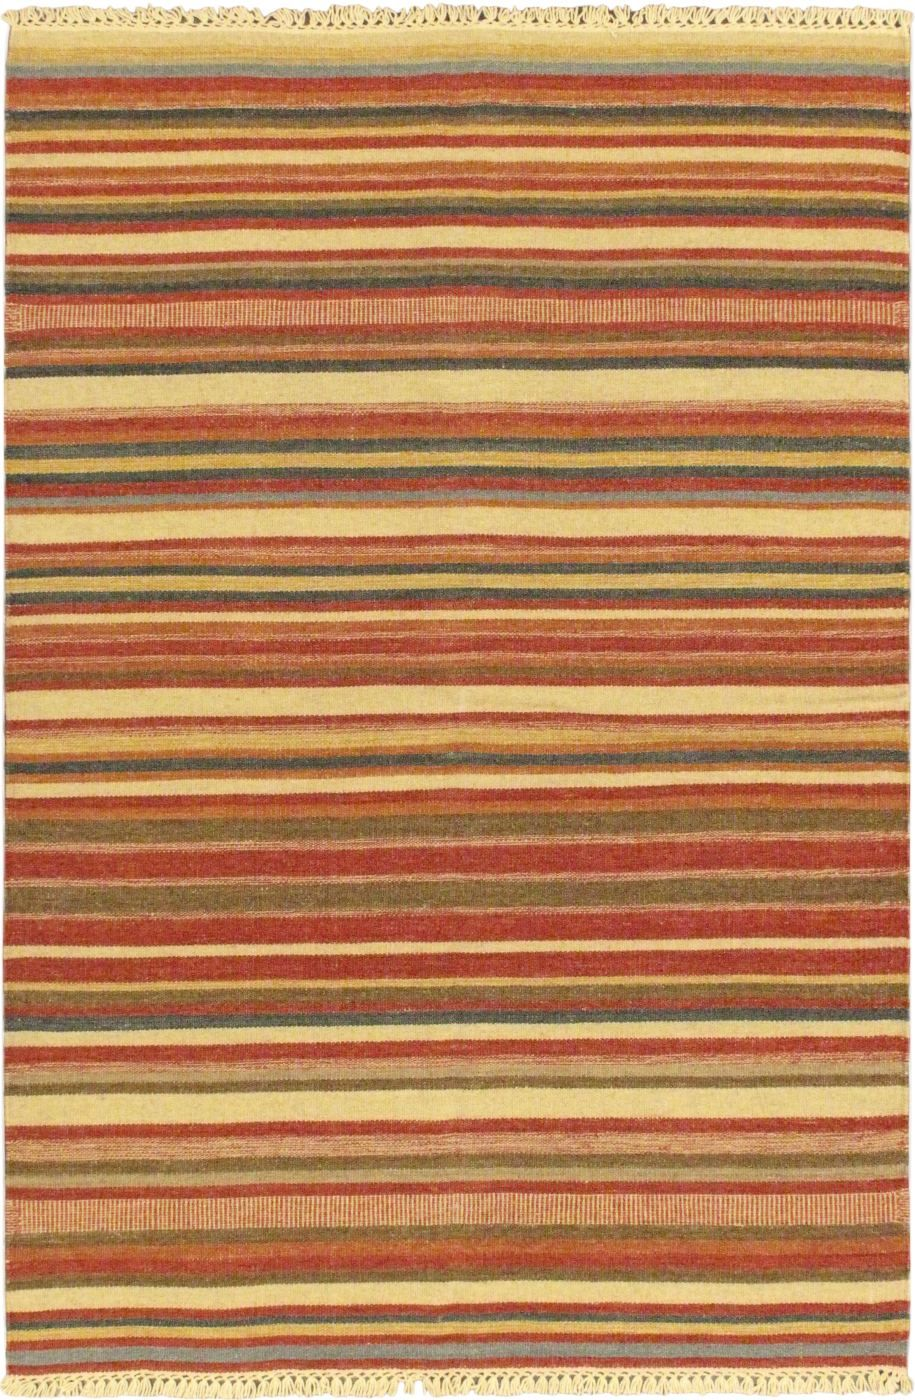 ecarpet gallery kaleidoscope solid/striped area rug collection